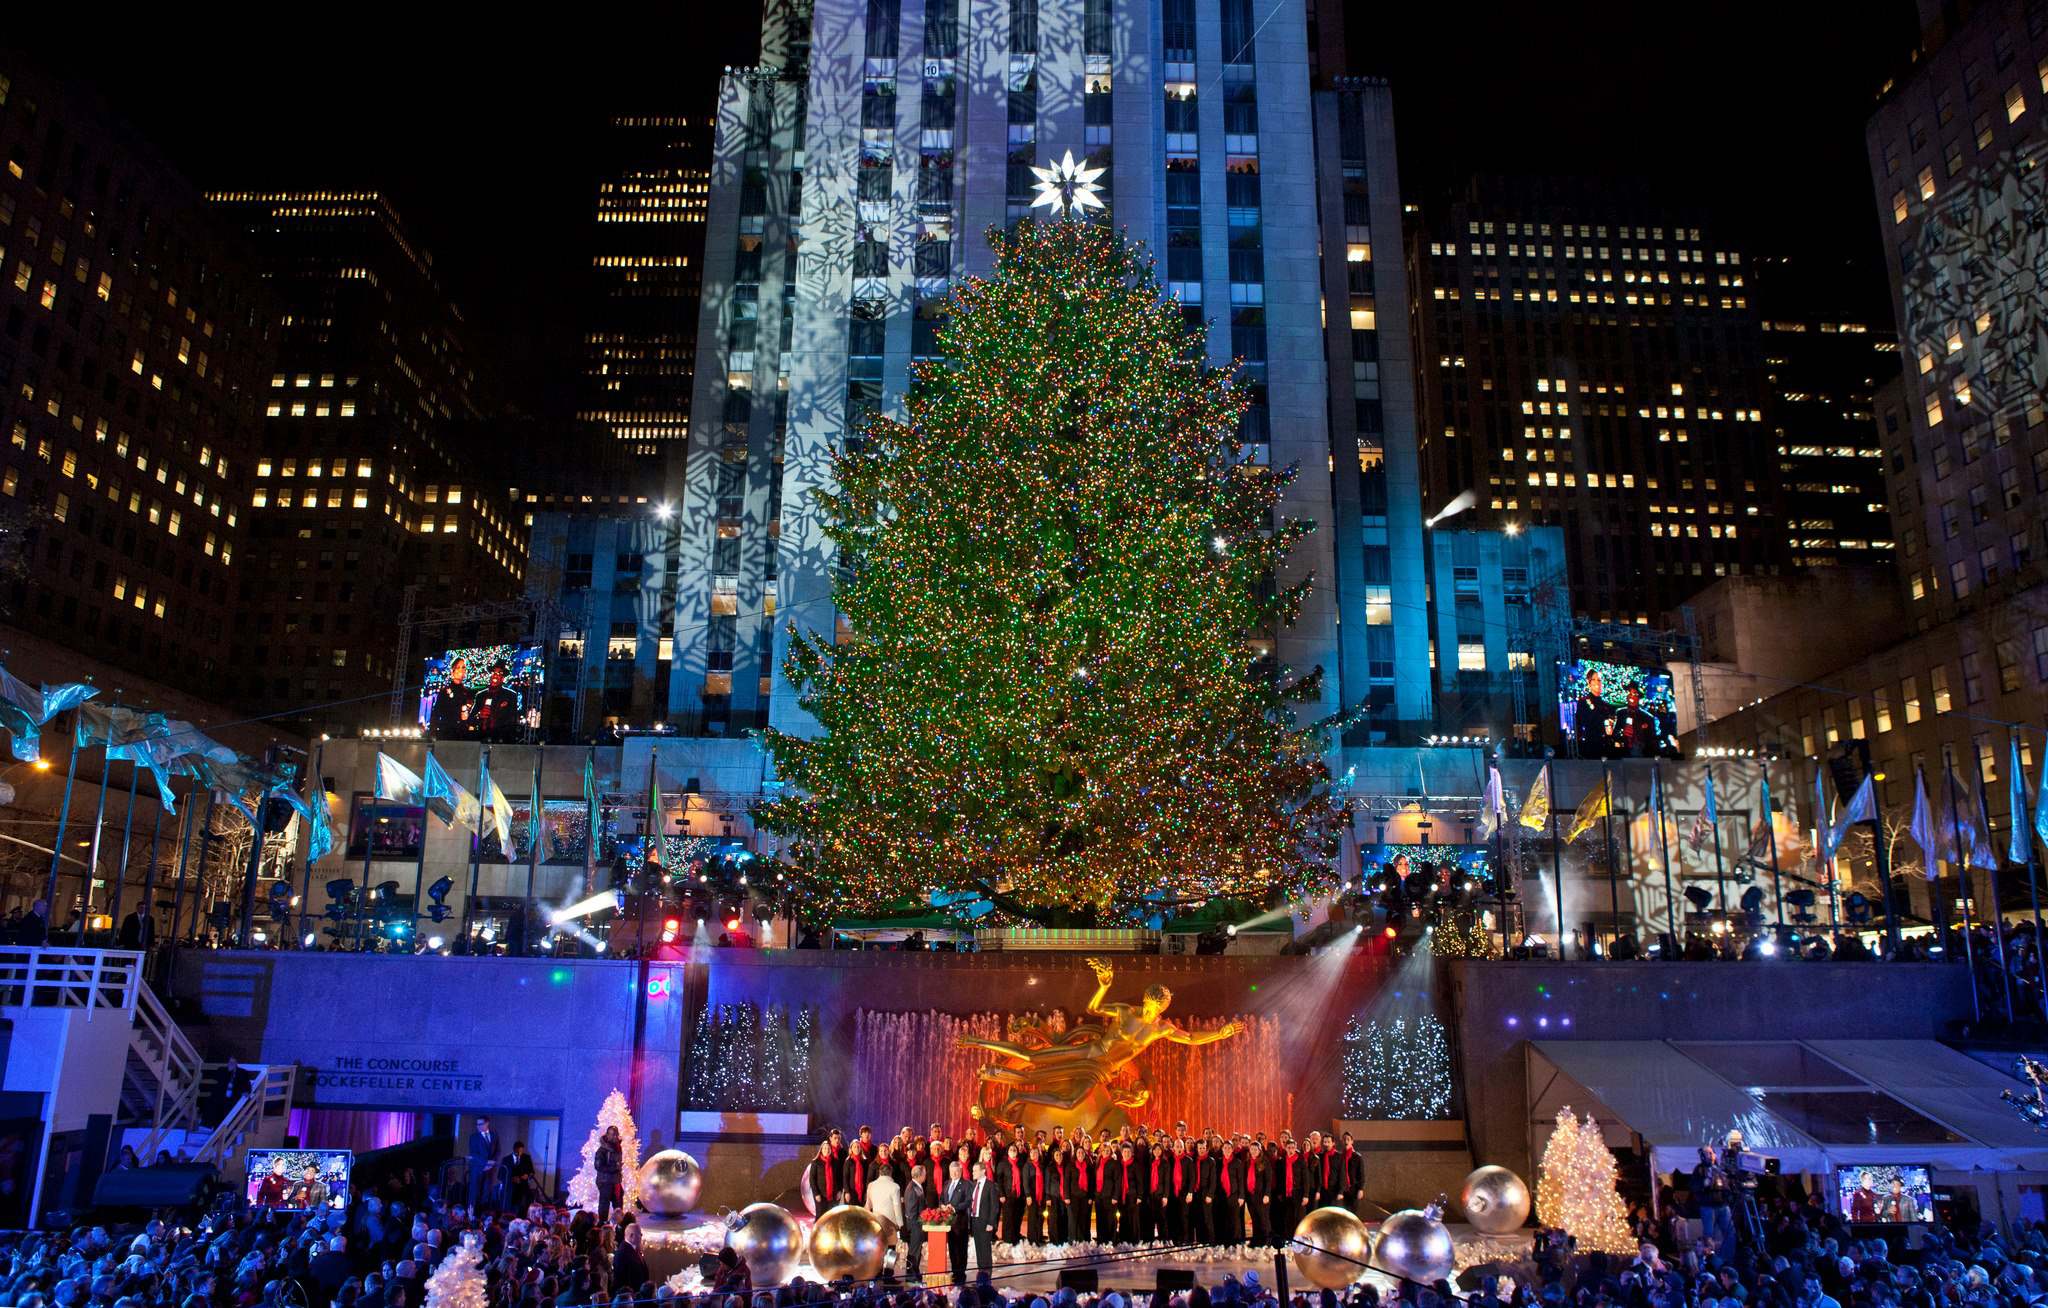 Rockefeller center christmas tree lighting | New York Sightseeing